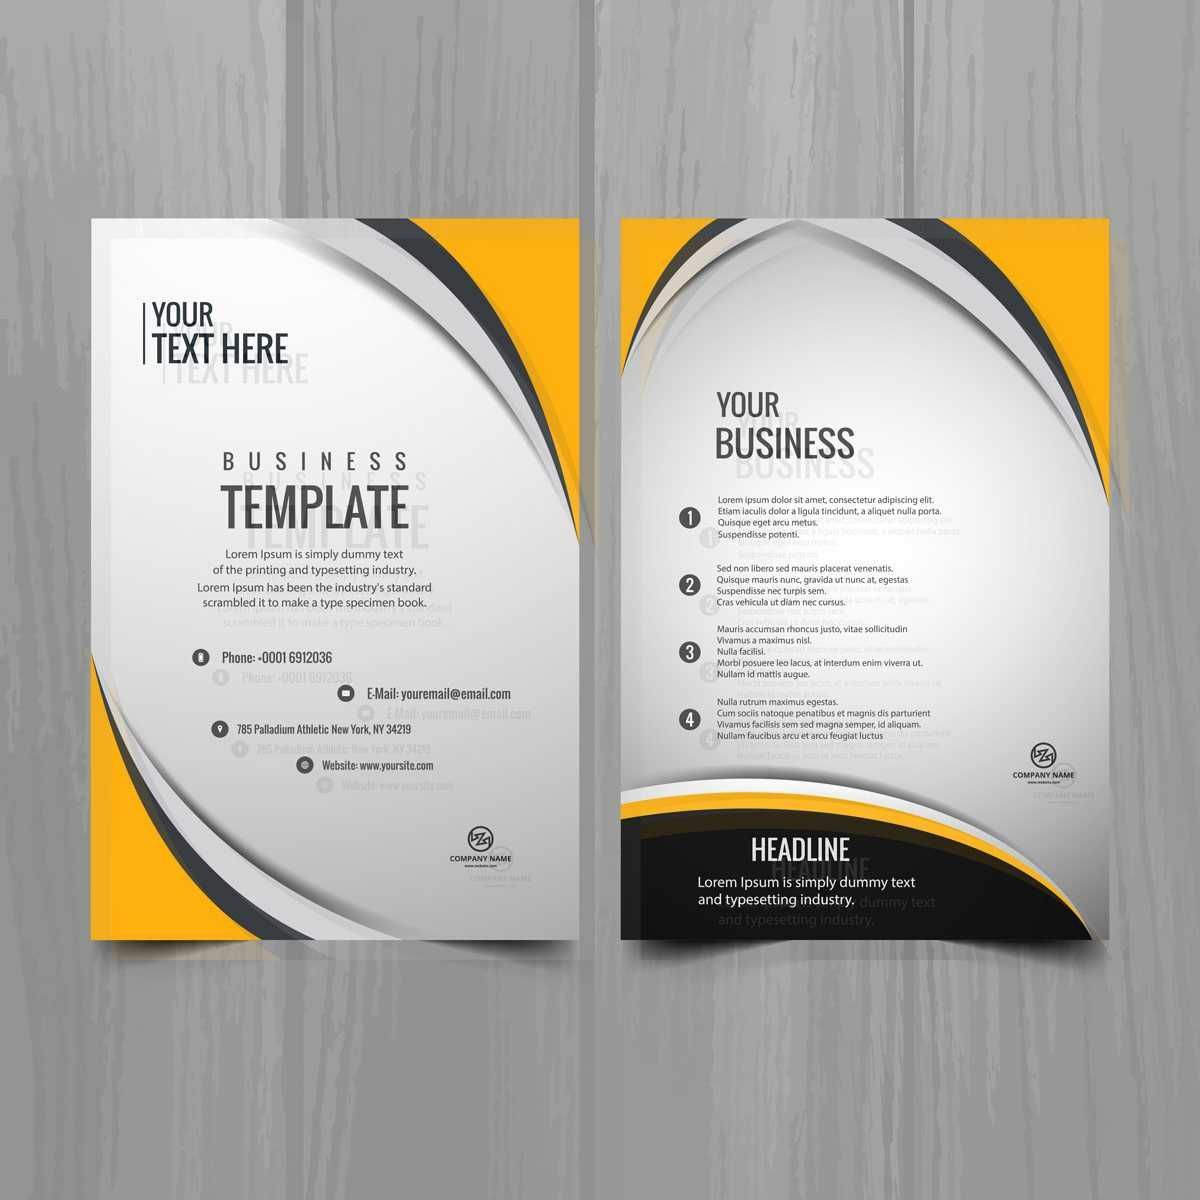 000 Marvelou Busines Brochure Design Template Free Download Sample Full